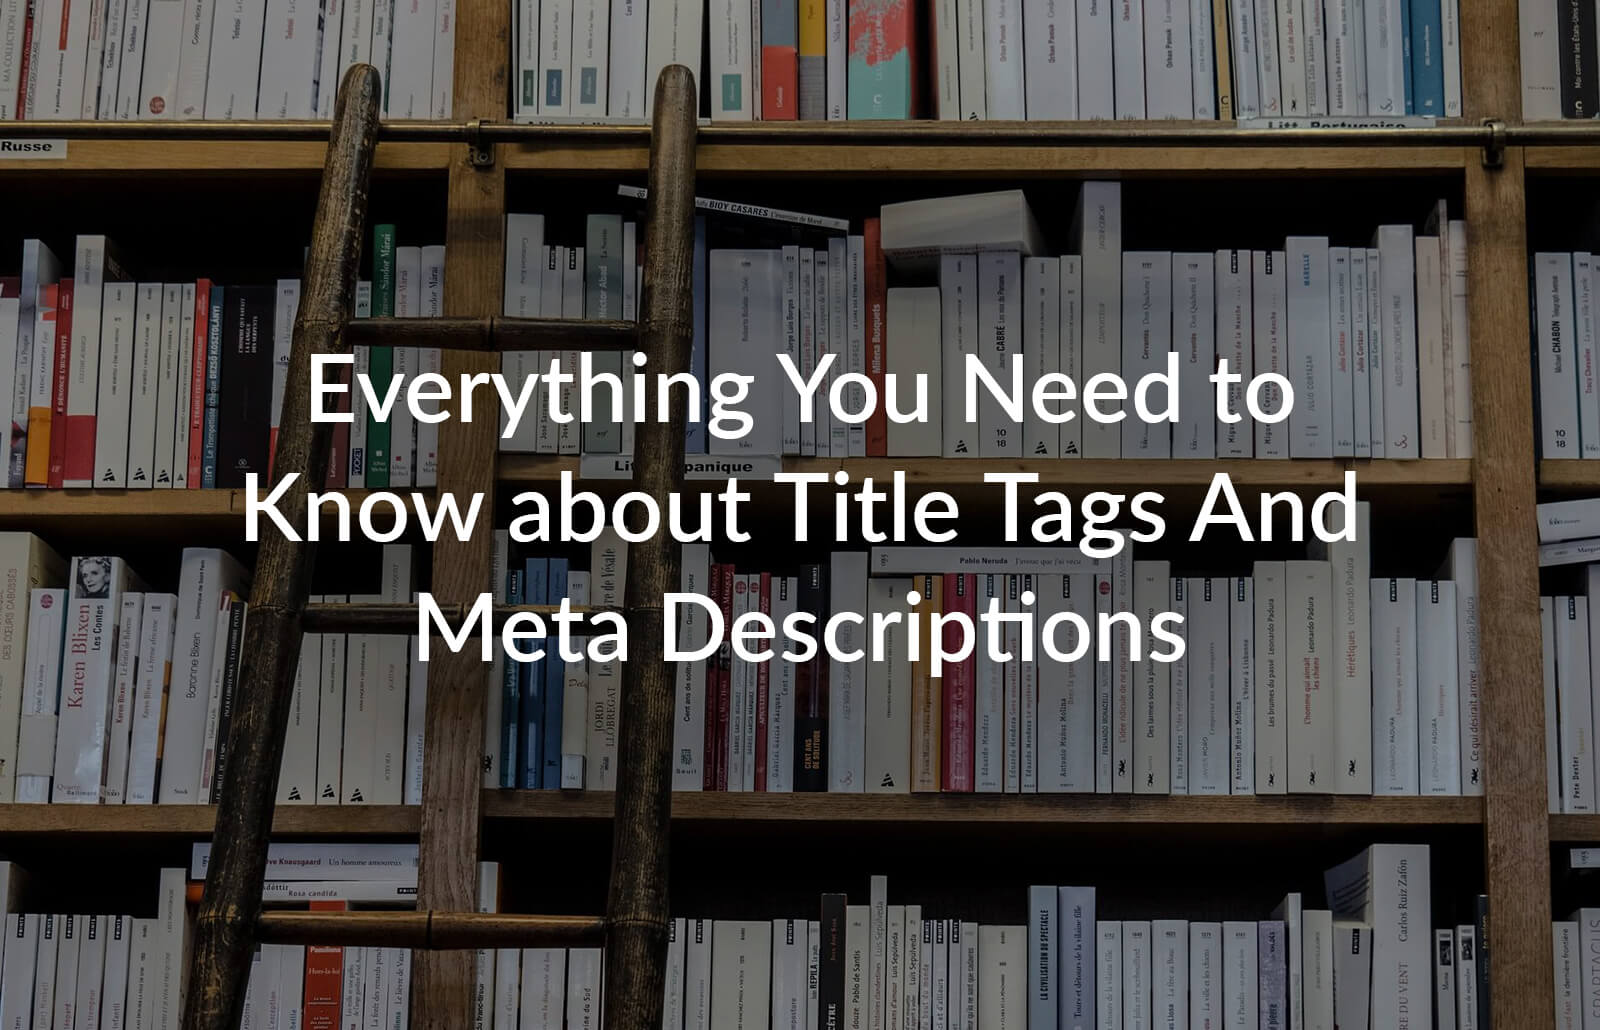 Everything you need to Know about Title Tags and Meta Descriptions